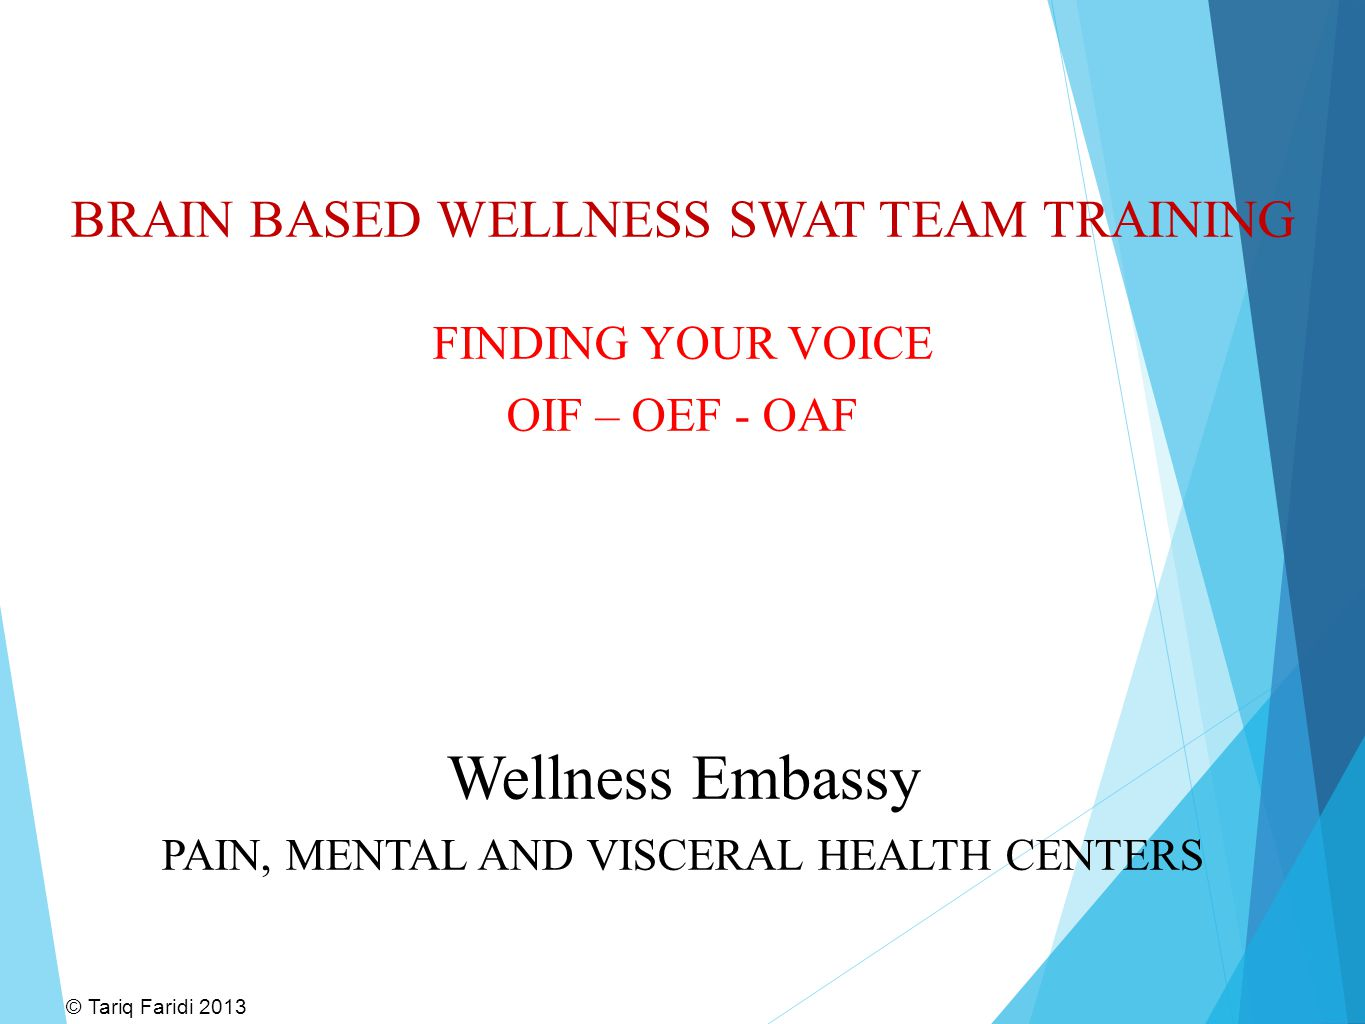 BRAIN BASED WELLNESS SWAT TEAM TRAINING FINDING YOUR VOICE OIF – OEF - OAF Wellness Embassy PAIN, MENTAL AND VISCERAL HEALTH CENTERS © Tariq Faridi 20